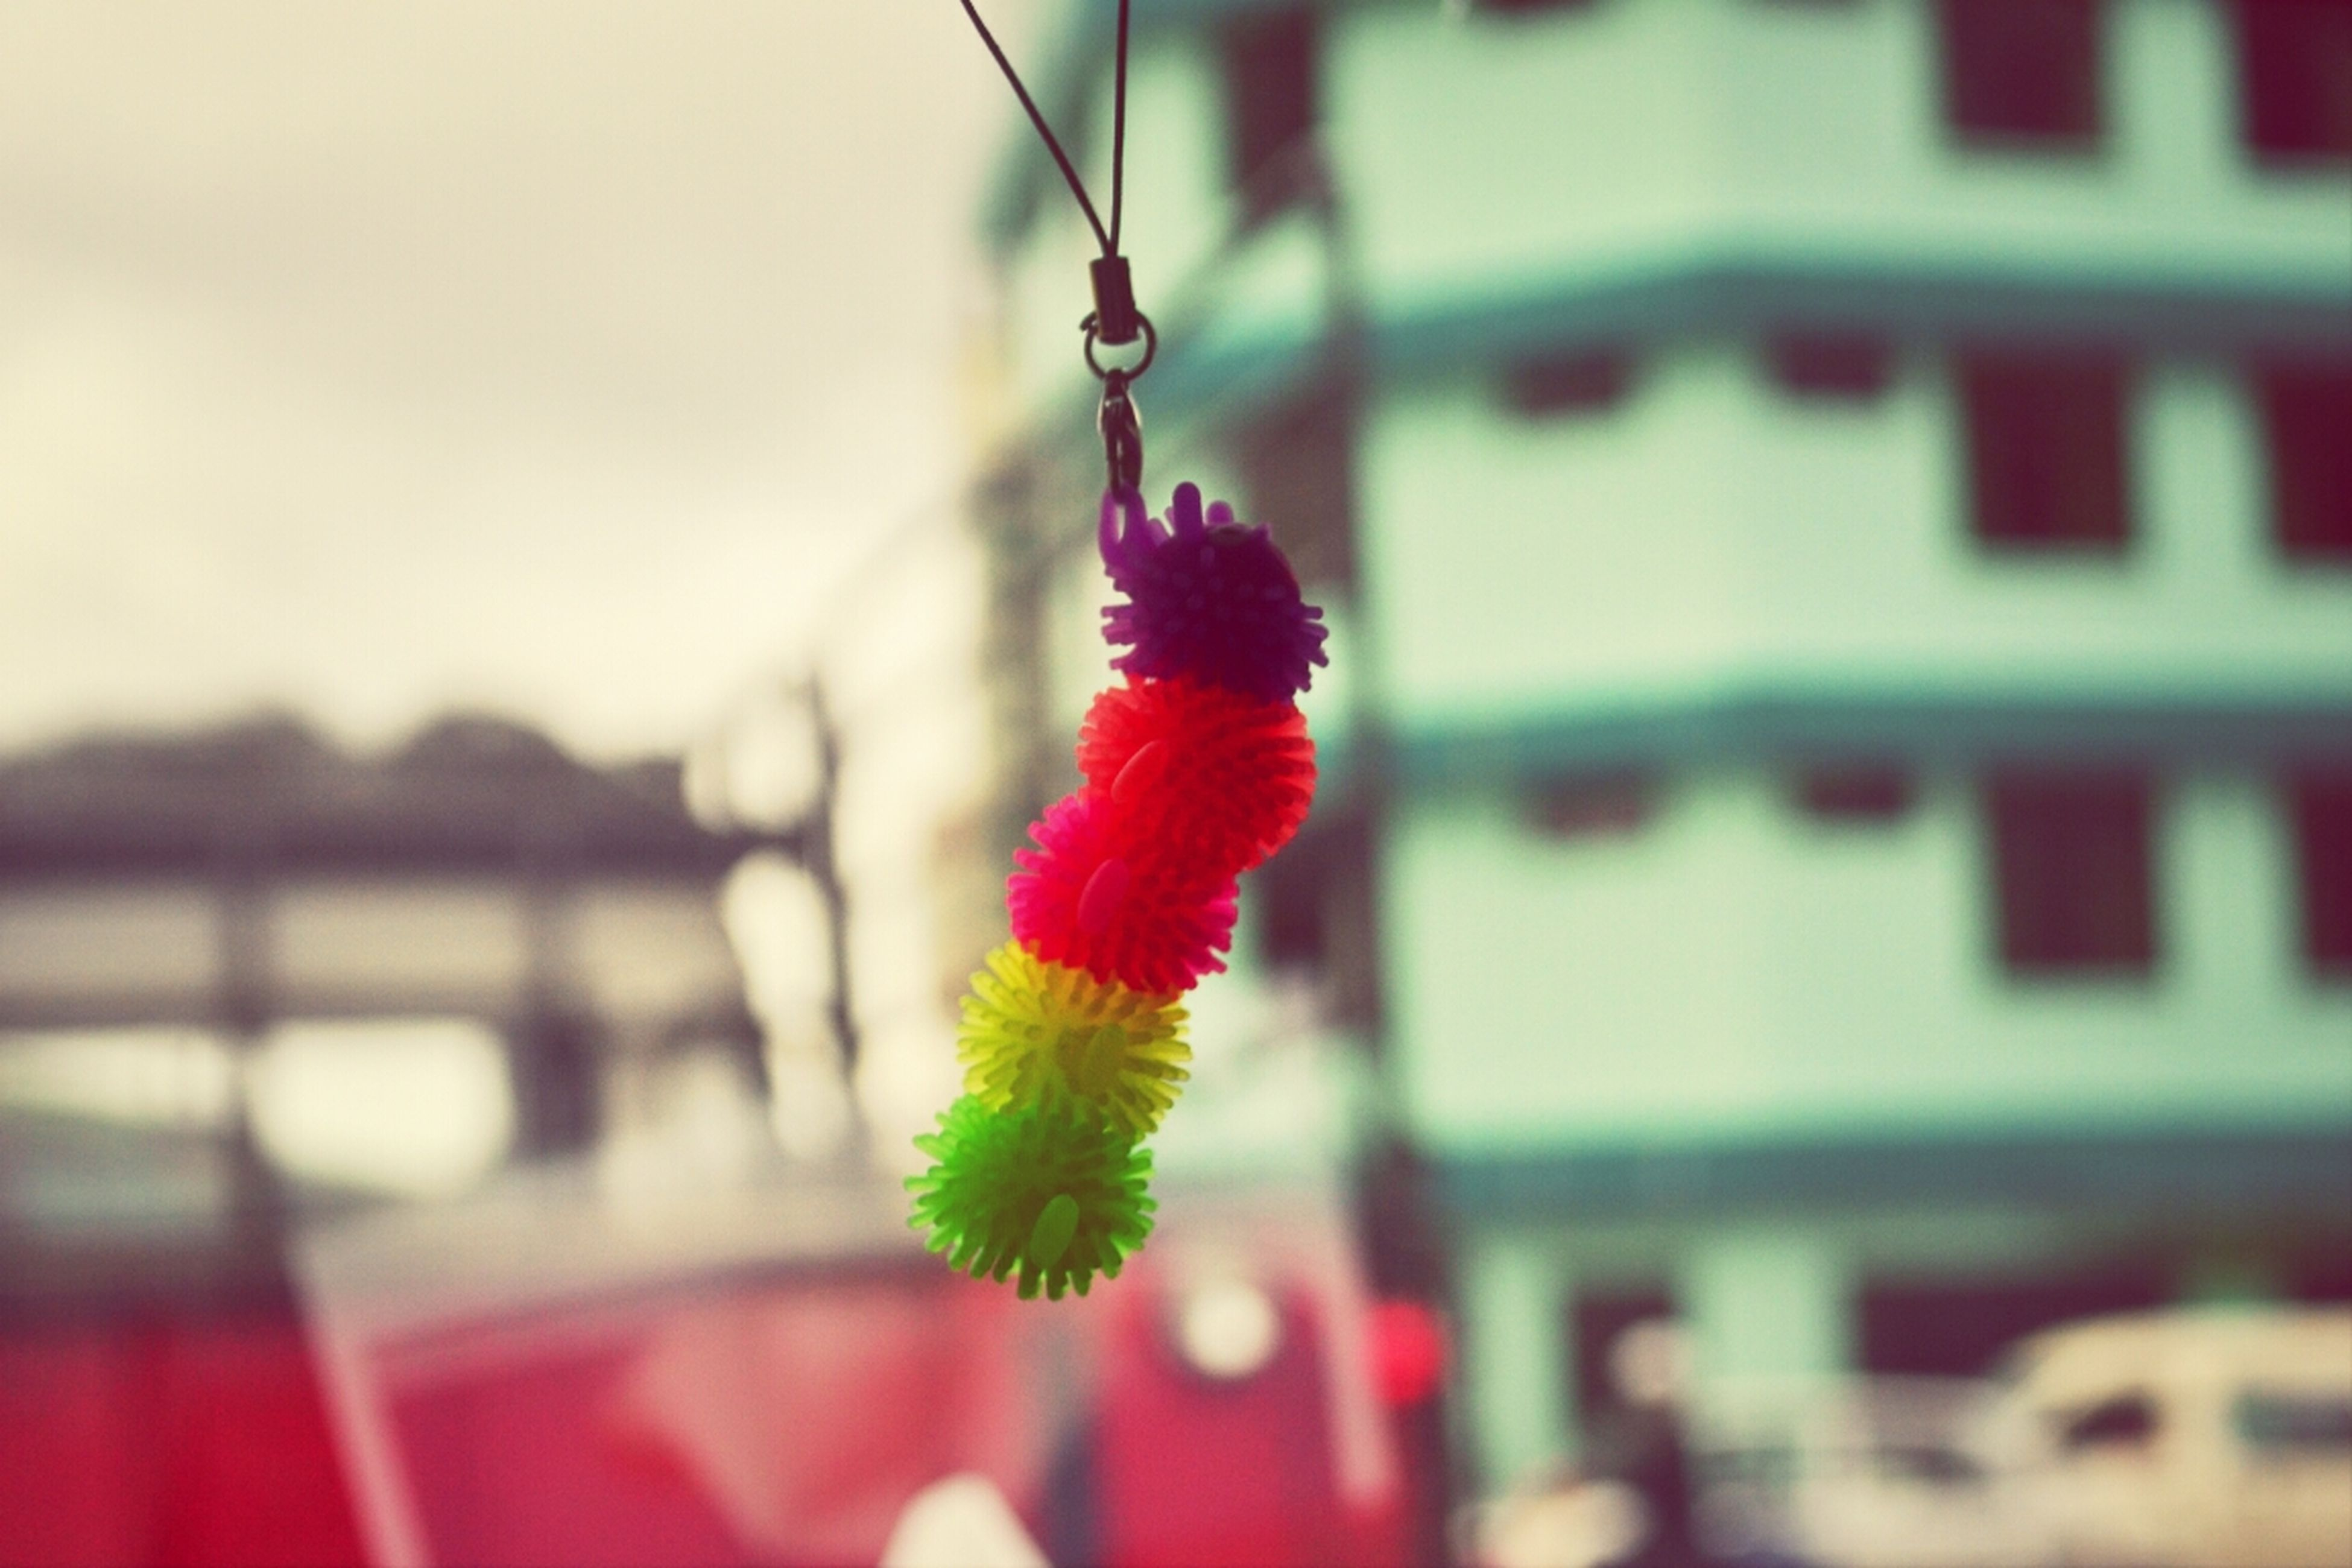 red, focus on foreground, selective focus, bird, close-up, one animal, animal themes, multi colored, hanging, flower, day, no people, outdoors, built structure, architecture, decoration, side view, perching, pink color